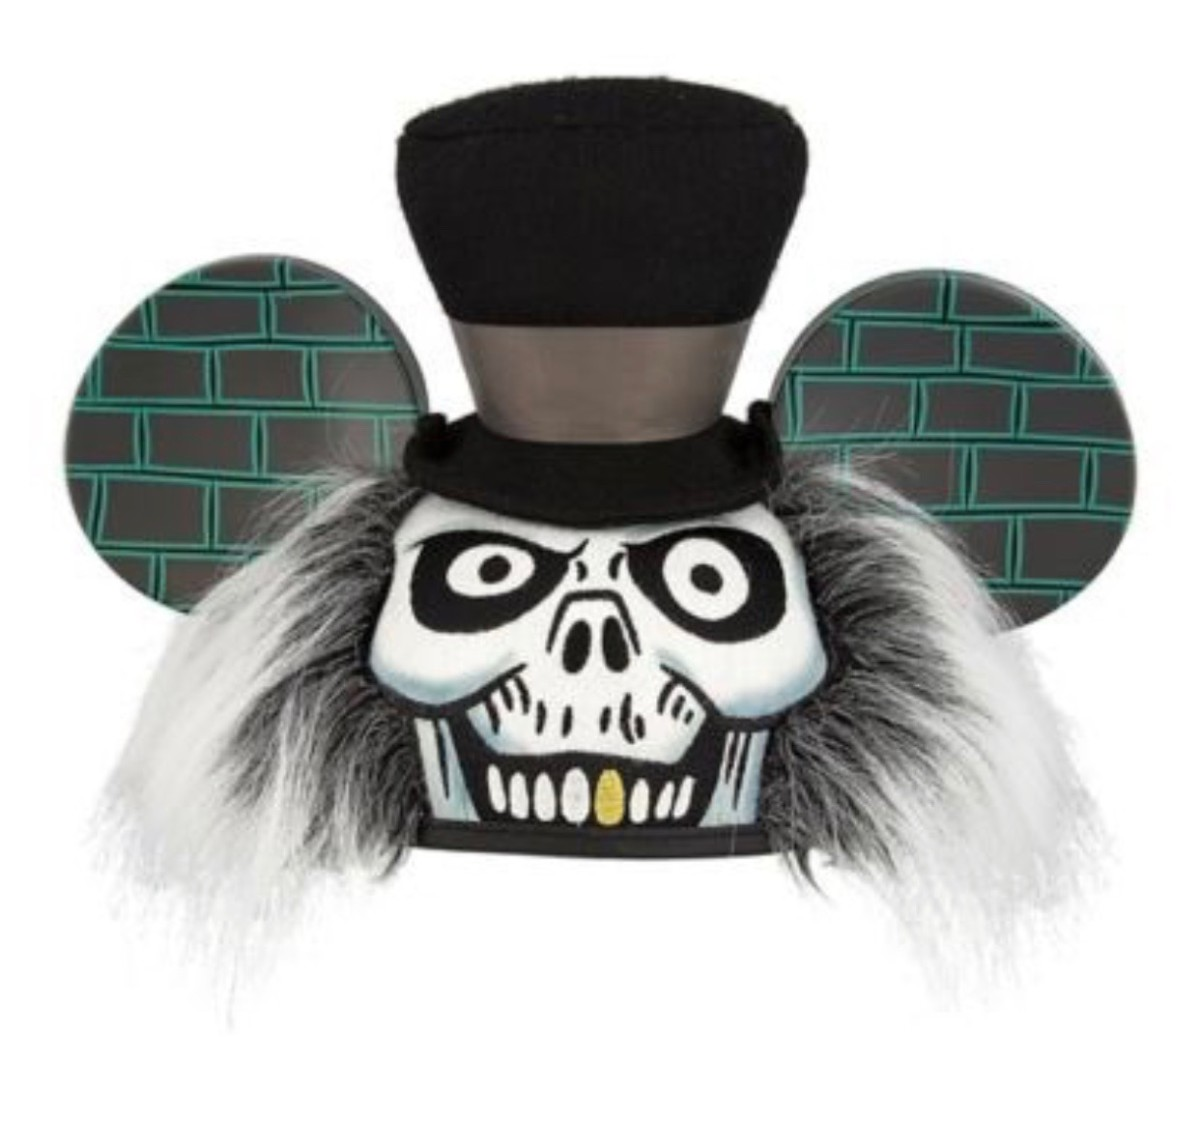 New Haunted Mansion Ear Collection Coming Out Soon for Halloween! 2